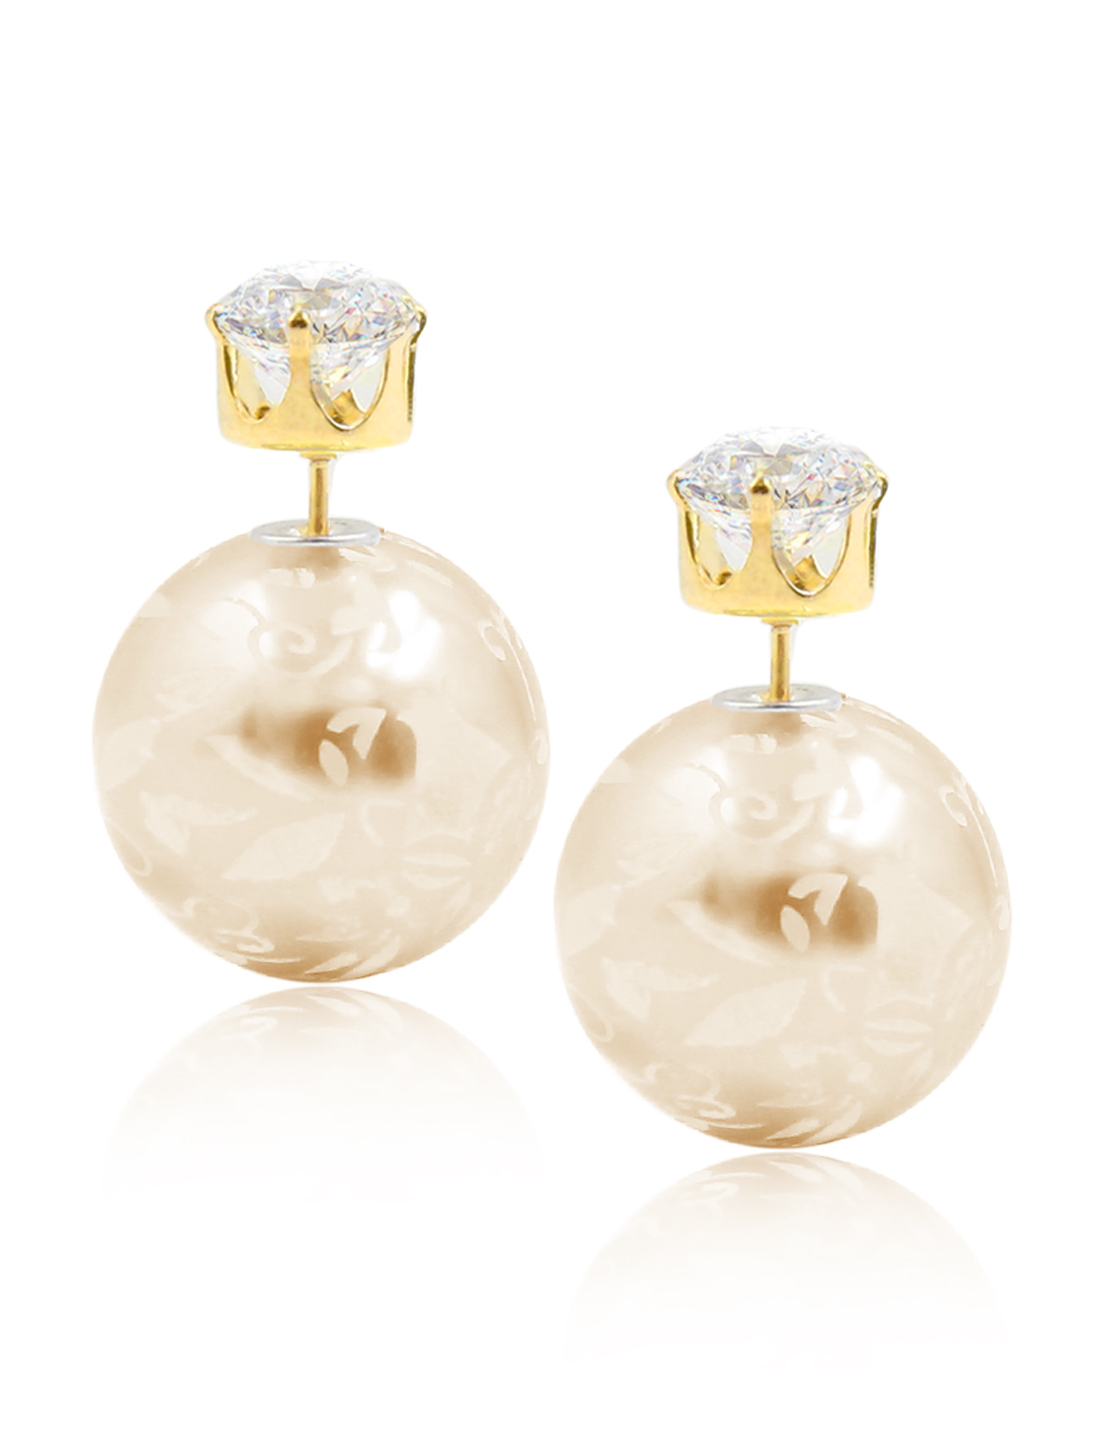 Fashion Women Elegant Double Sides Zircon Flower Pattern Ball Earrings Ear Stud 1 Pair Champagne